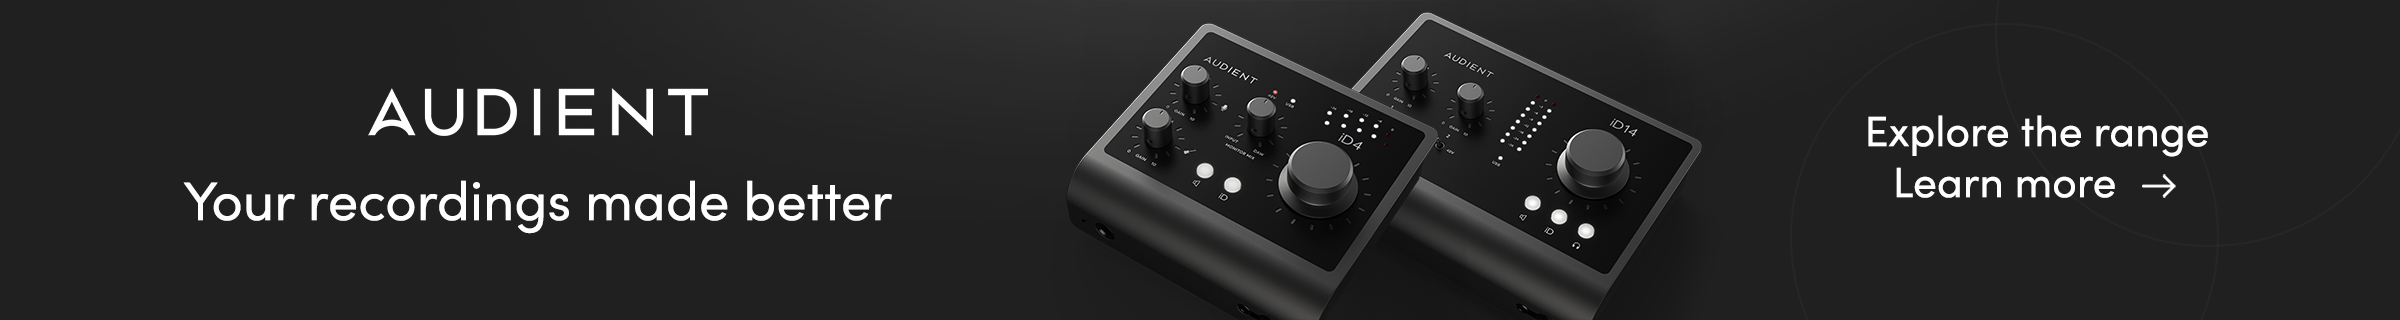 New UAD-1 software is out: v2.2.2